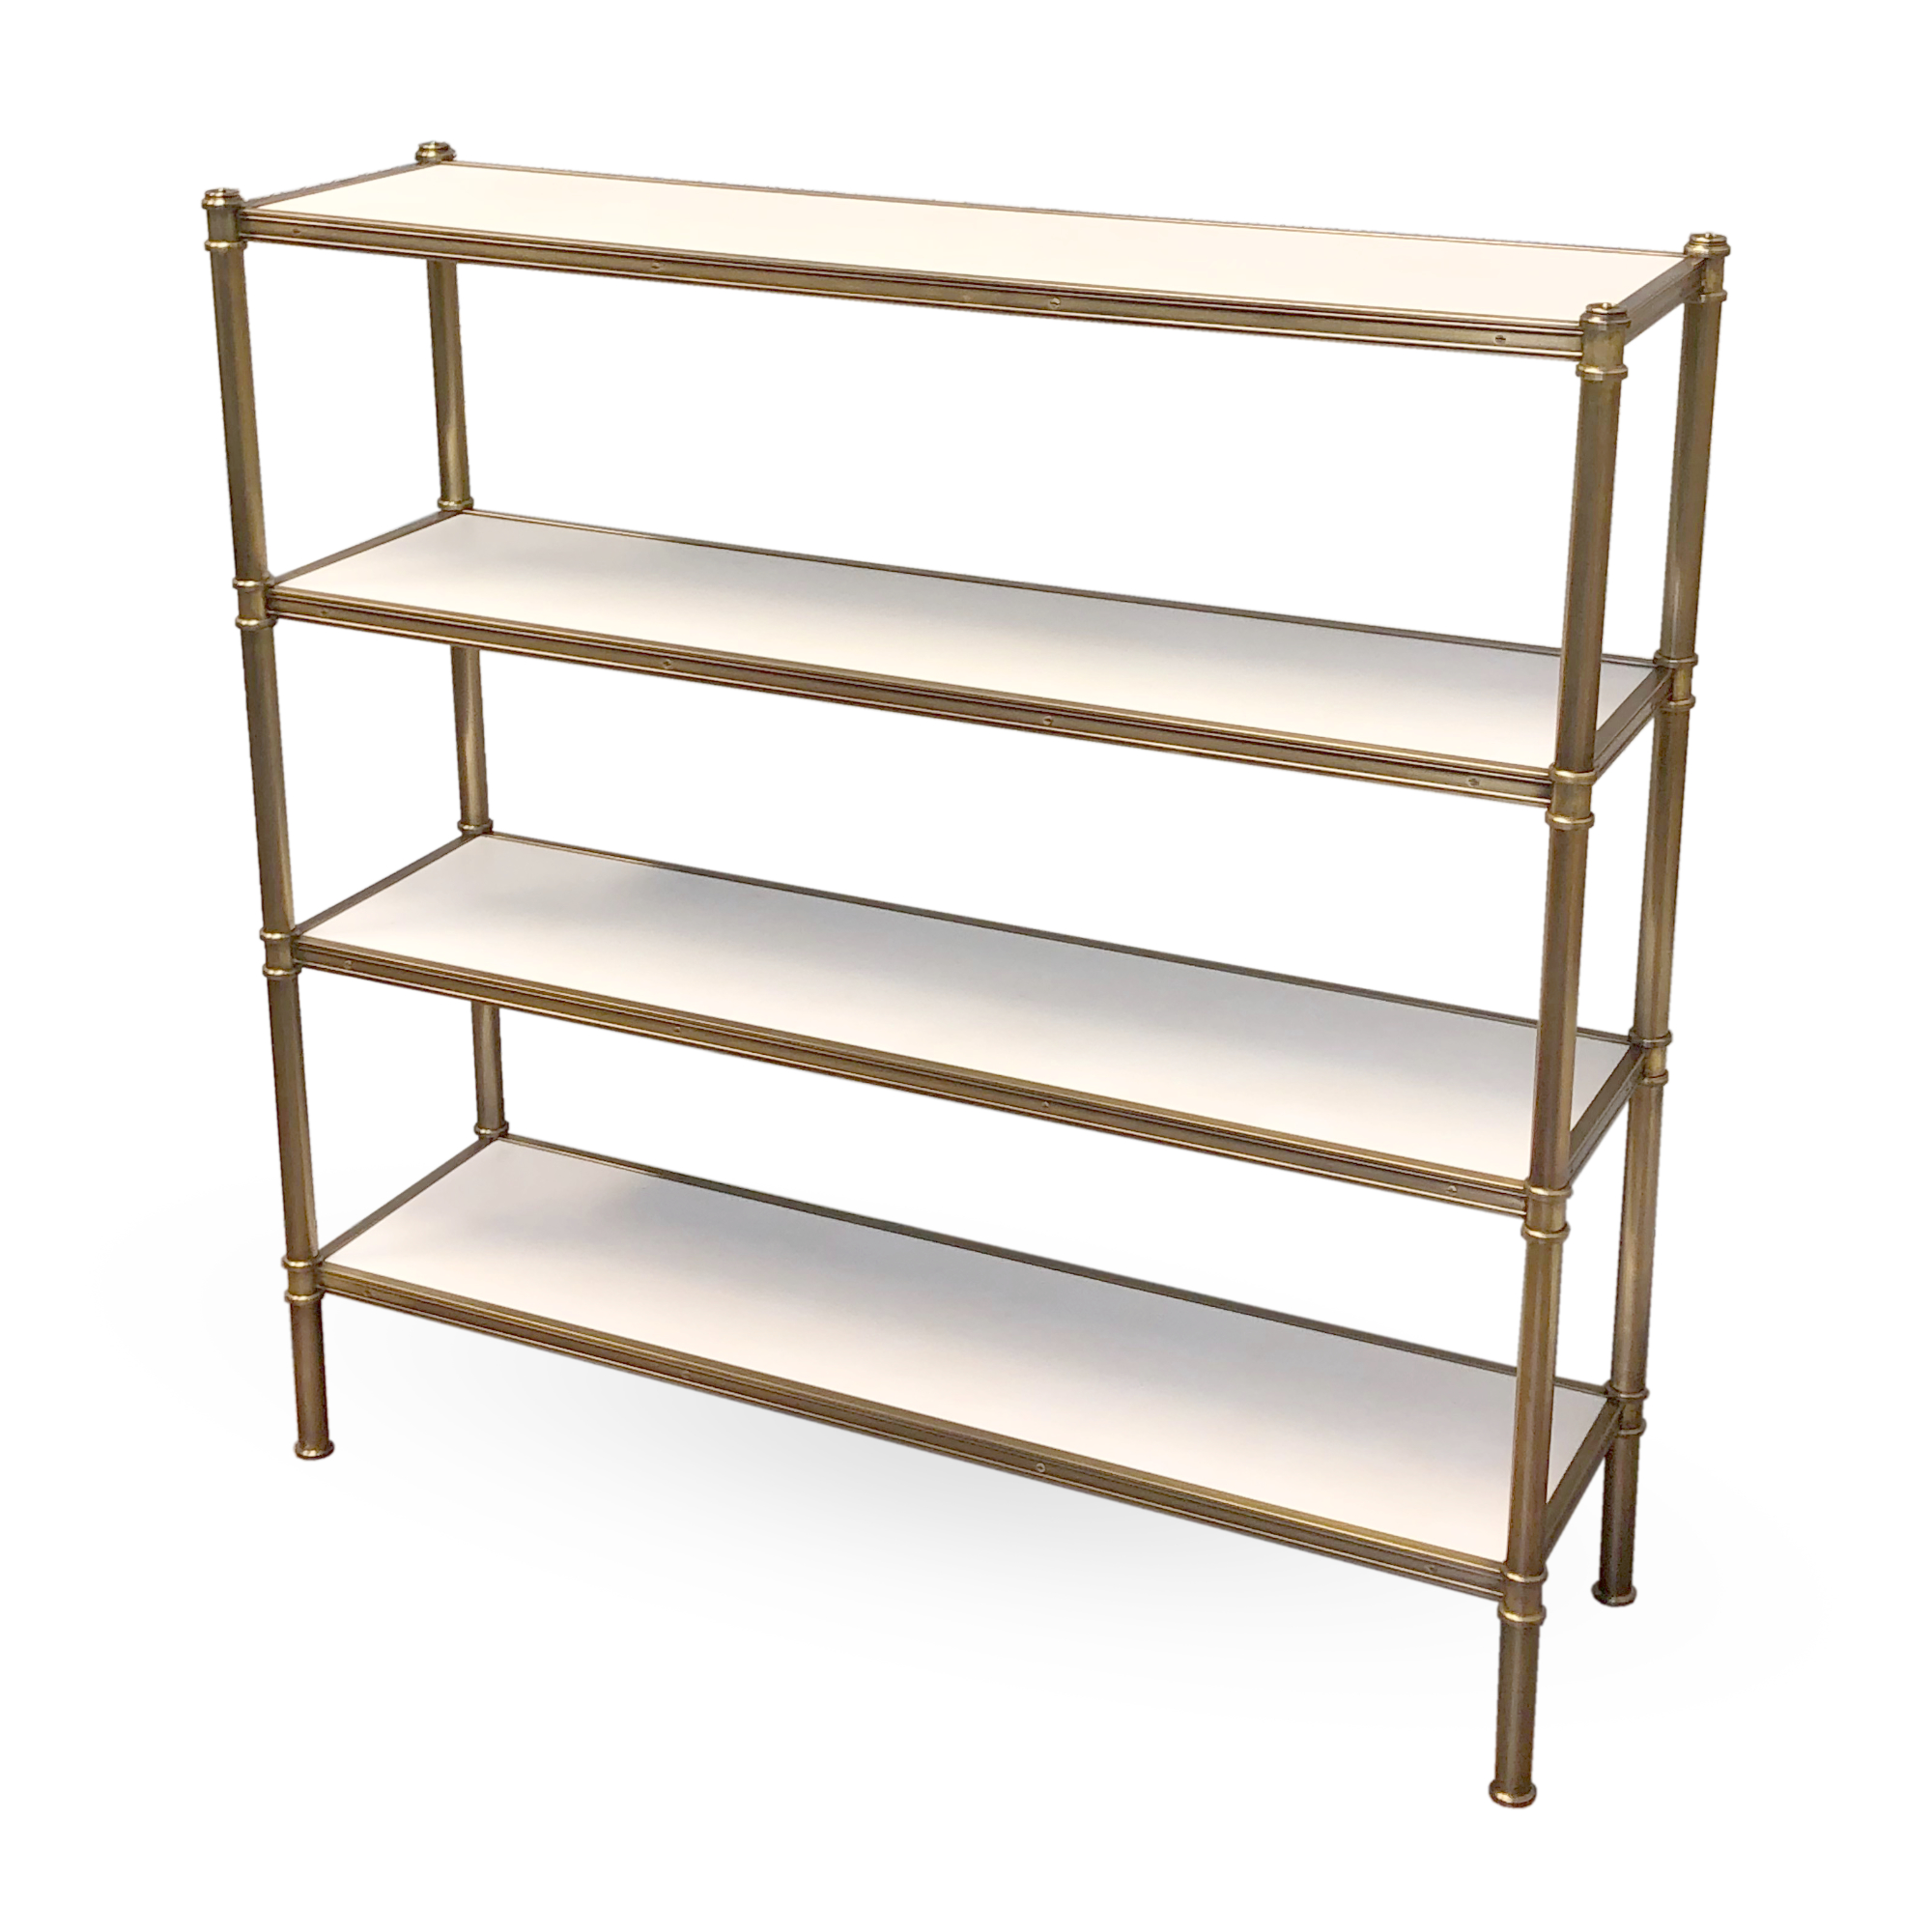 Pair-Cole-Porter-Etagere-Shelves-Storage-Case-Brass-Frame-Victoria-Son-victoriaandson.com-Book-Finials-low.jpg